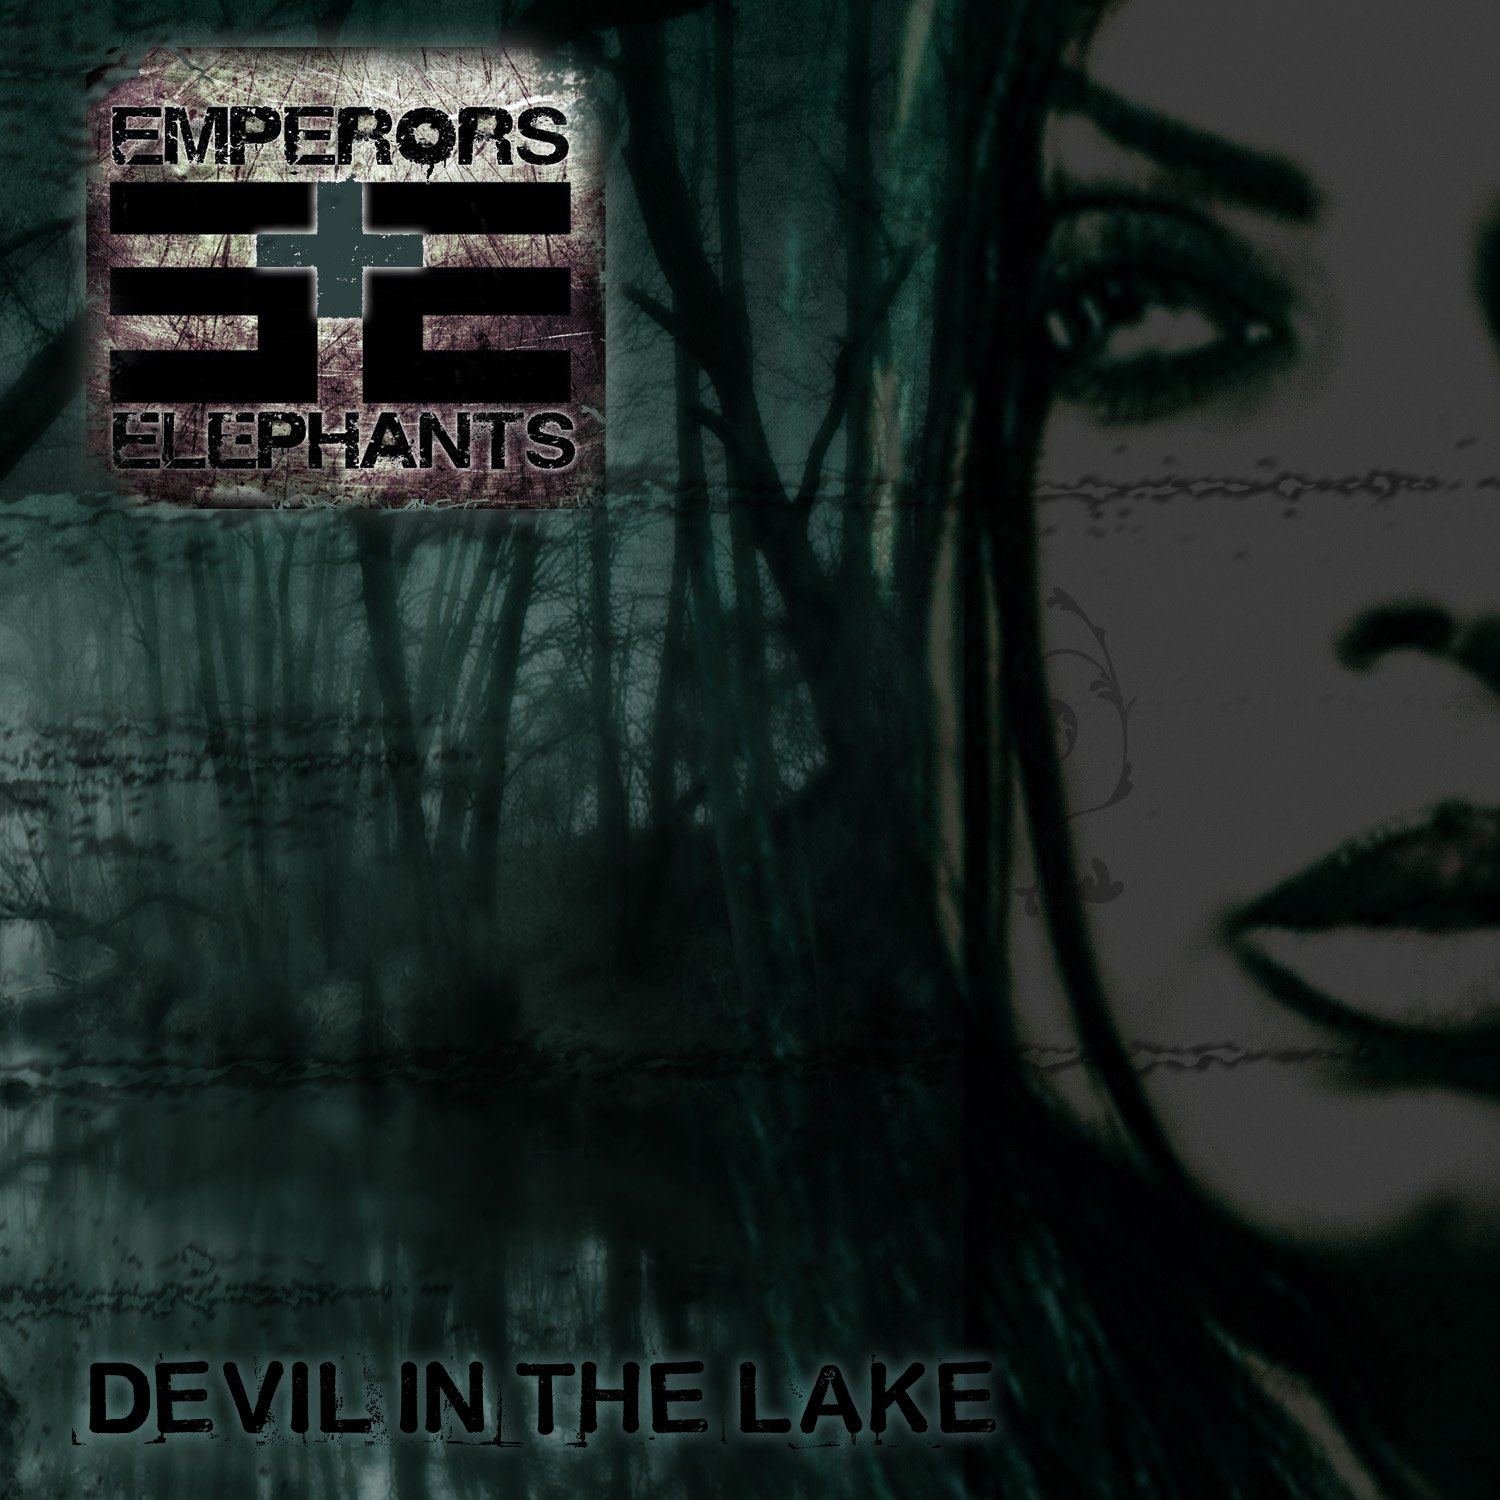 CD : Emperors and Elephants - Devil In The Lake (CD)